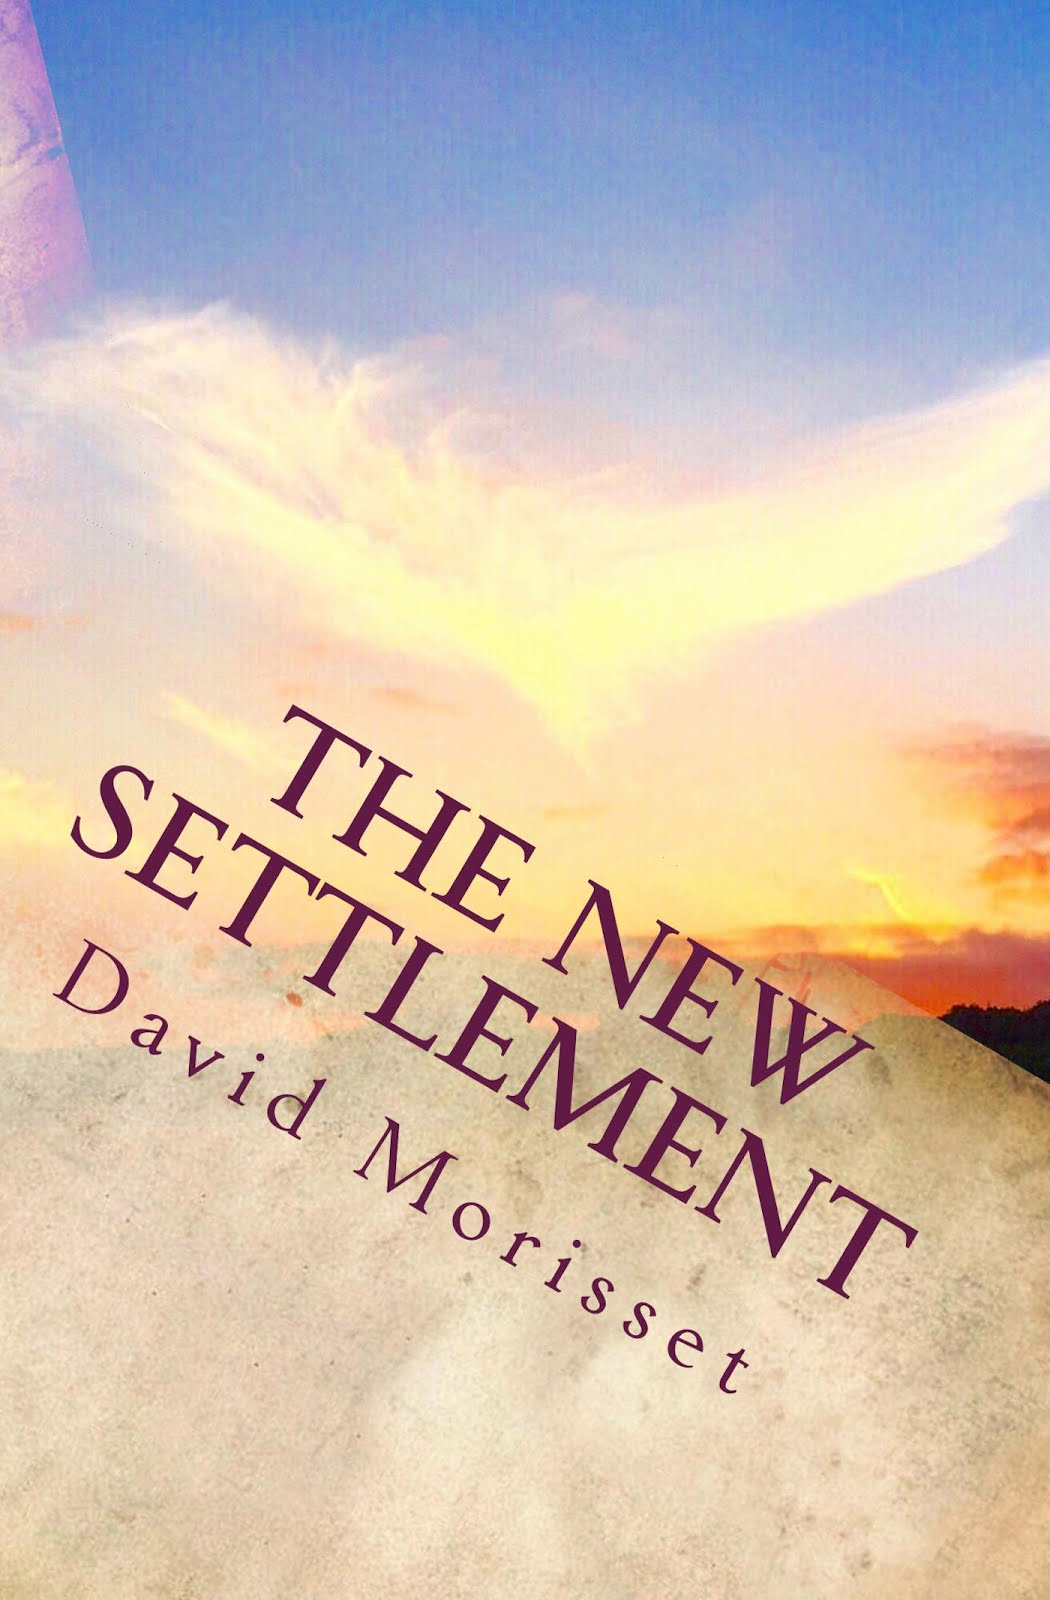 THE NEW SETTLEMENT